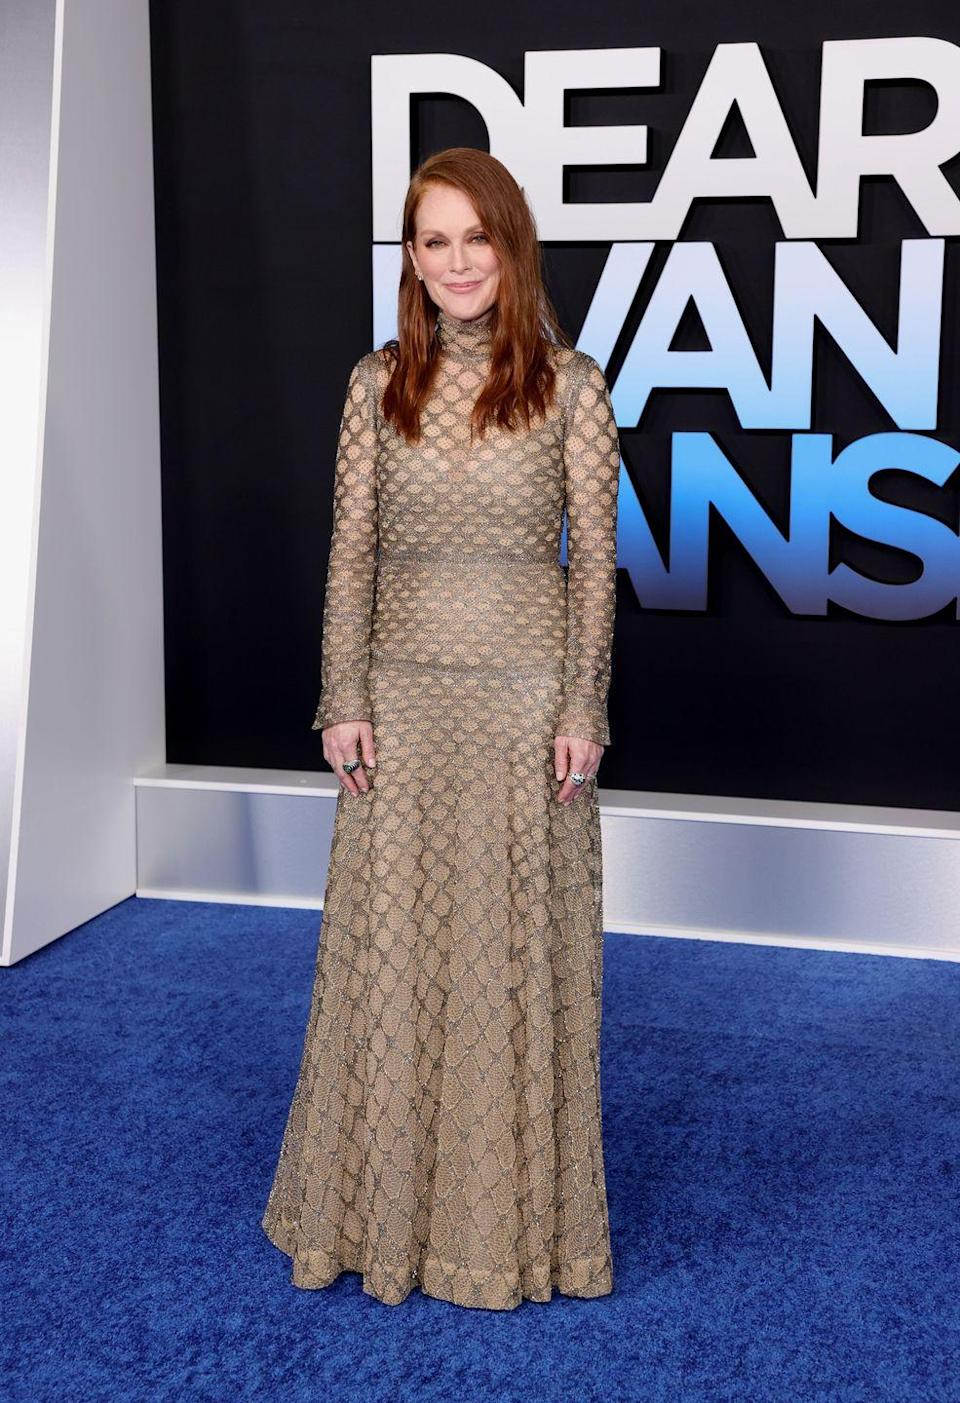 <p><strong>22 September</strong></p><p>Julianne Moore wore a shimmering metallic mesh dress by Valentino to the premiere of Dear Evan Hansen in LA.</p>